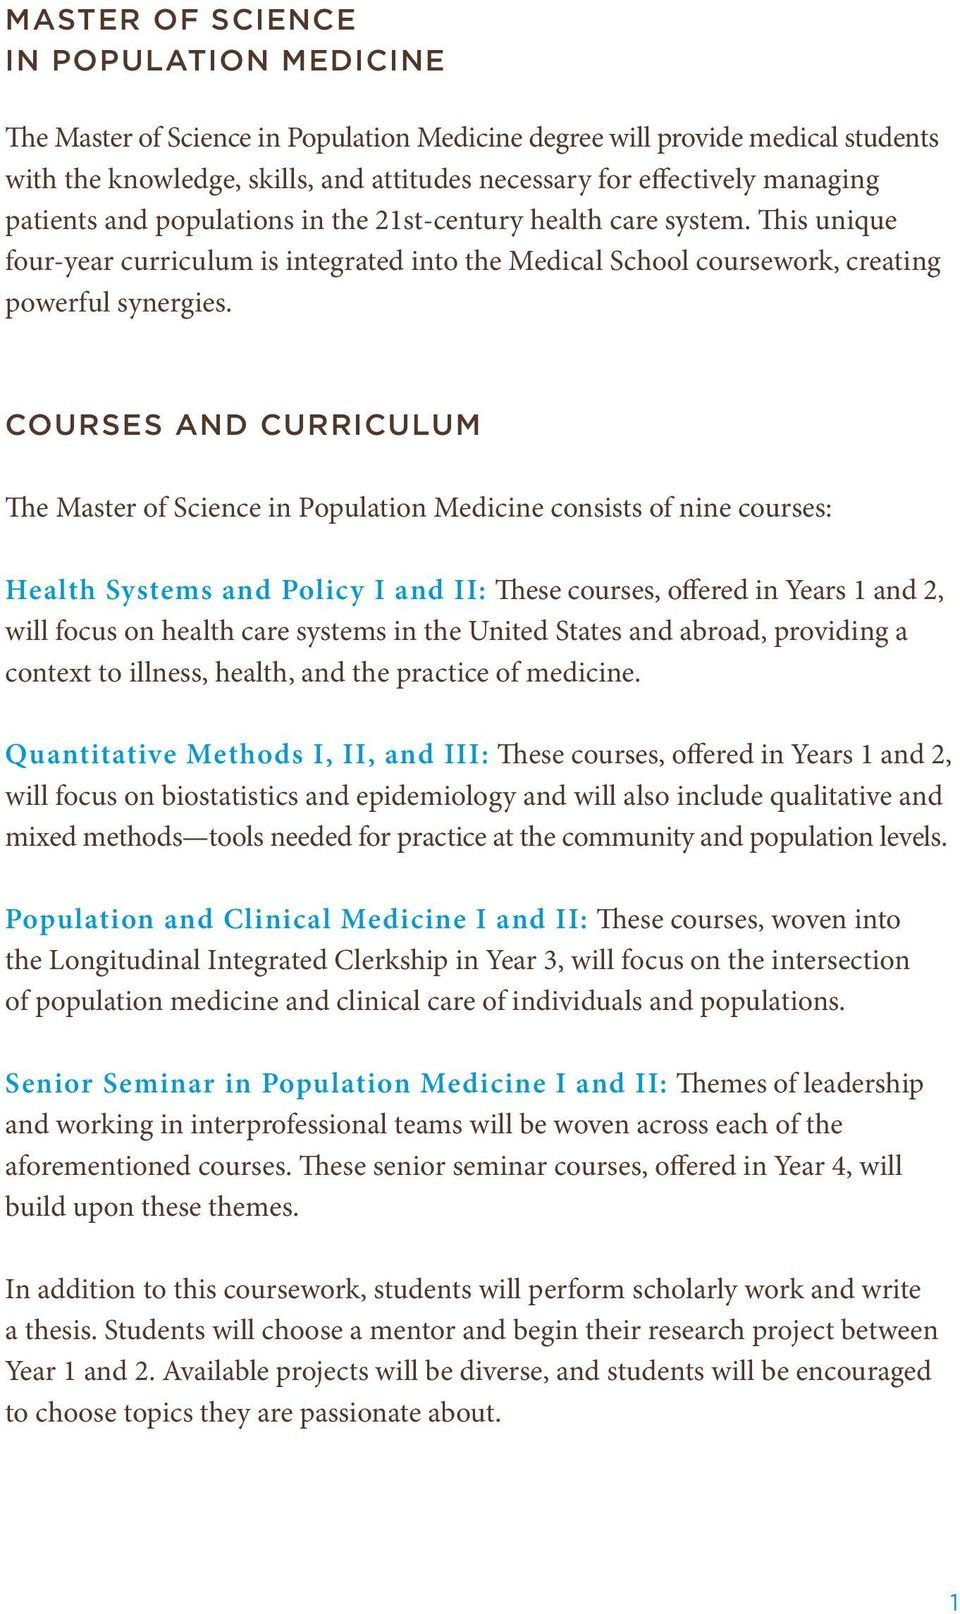 COURSES AND CURRICULUM The Master of Science in Population Medicine consists of nine courses: Health Systems and Policy I and II: These courses, offered in Years 1 and 2, will focus on health care